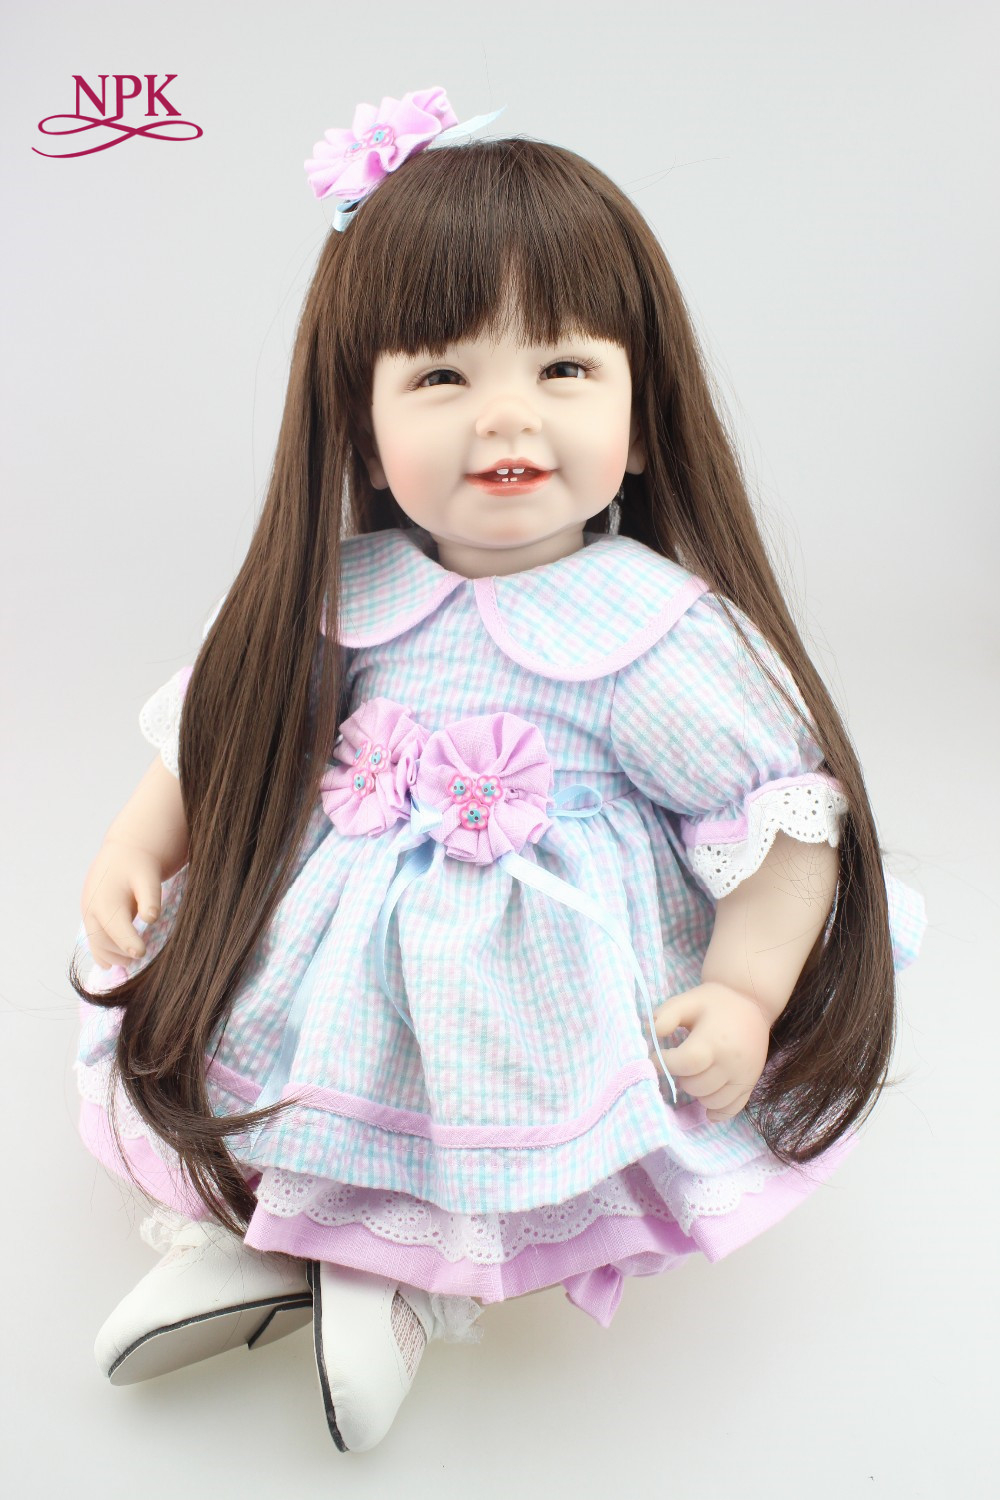 NPK Reborn Baby Doll with long hair Realistic Soft silicone Reborn Babies Girl 22Inch Adorable Bebe Kids Brinquedos boneca Toy 50cm reborn baby doll realistic soft silicone reborn babies girl bebe kids brinquedos kids birthday gifts